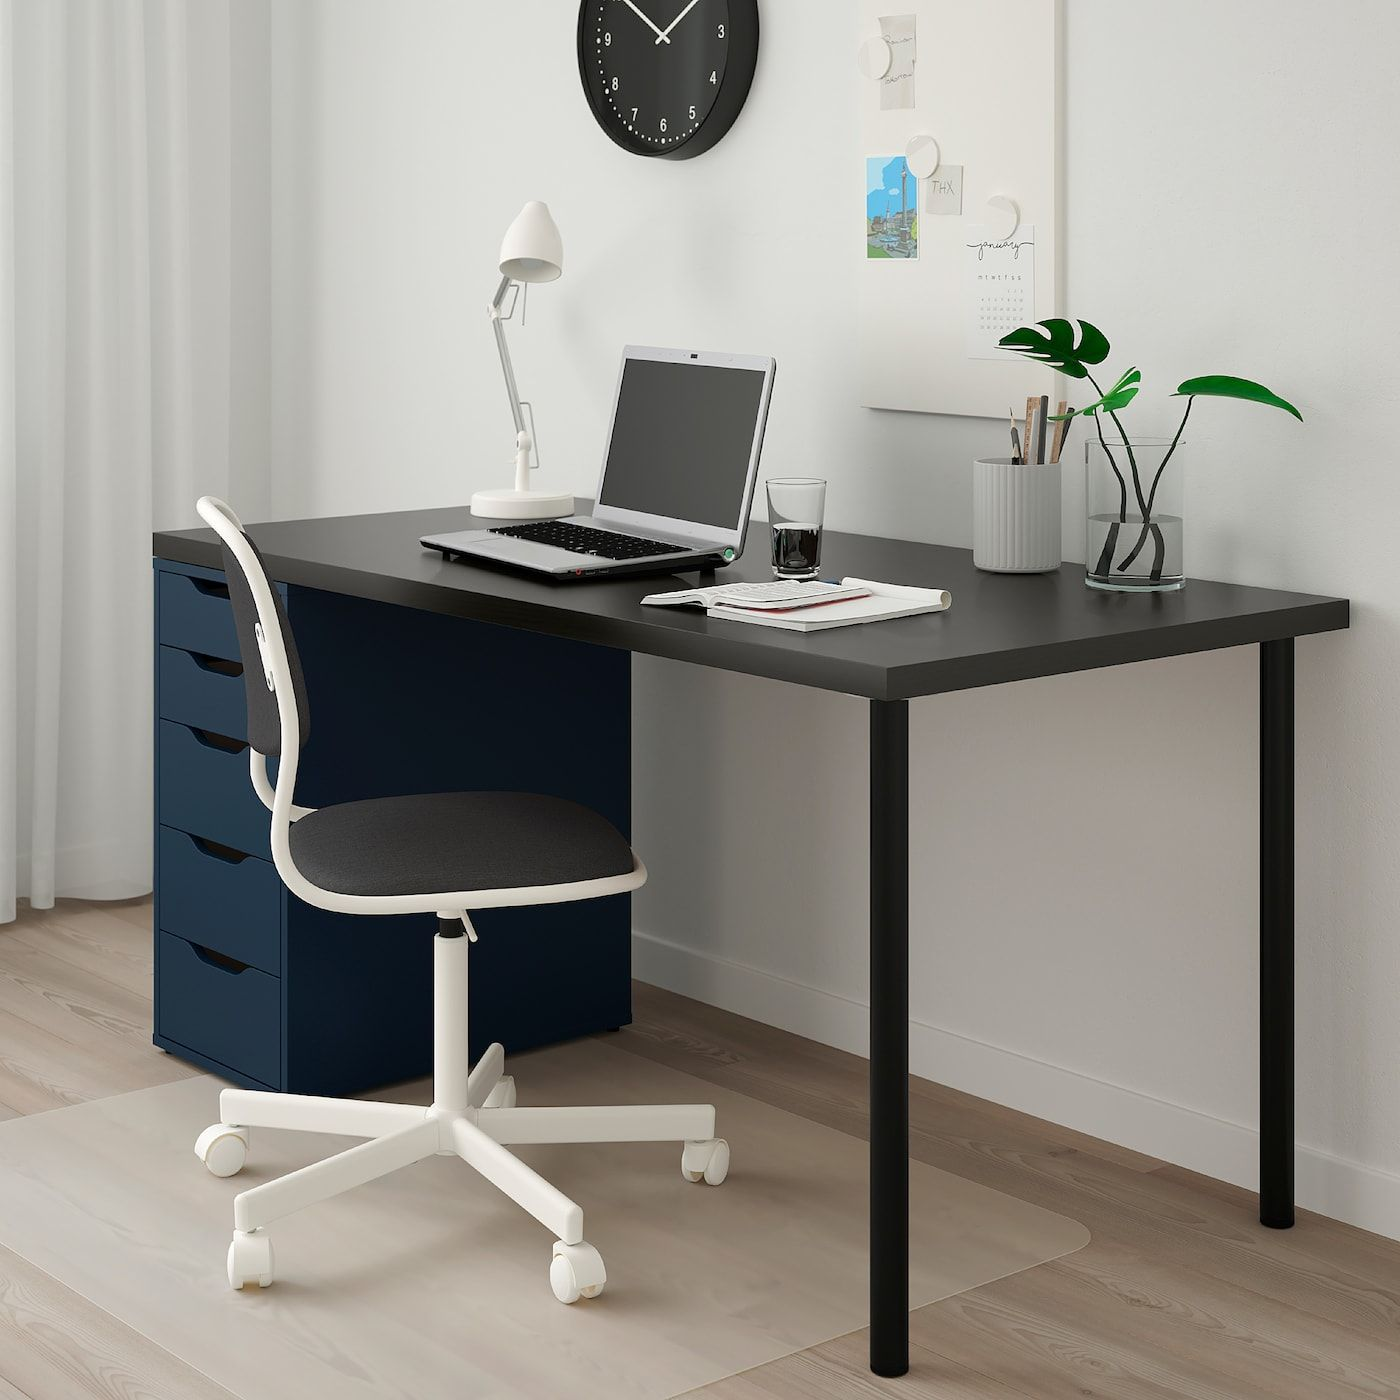 Linnmon Alex Table Black Brown Blue 59x29 1 2 Shop Online Or In Store Ikea In 2020 White Wood Desk Home Ikea